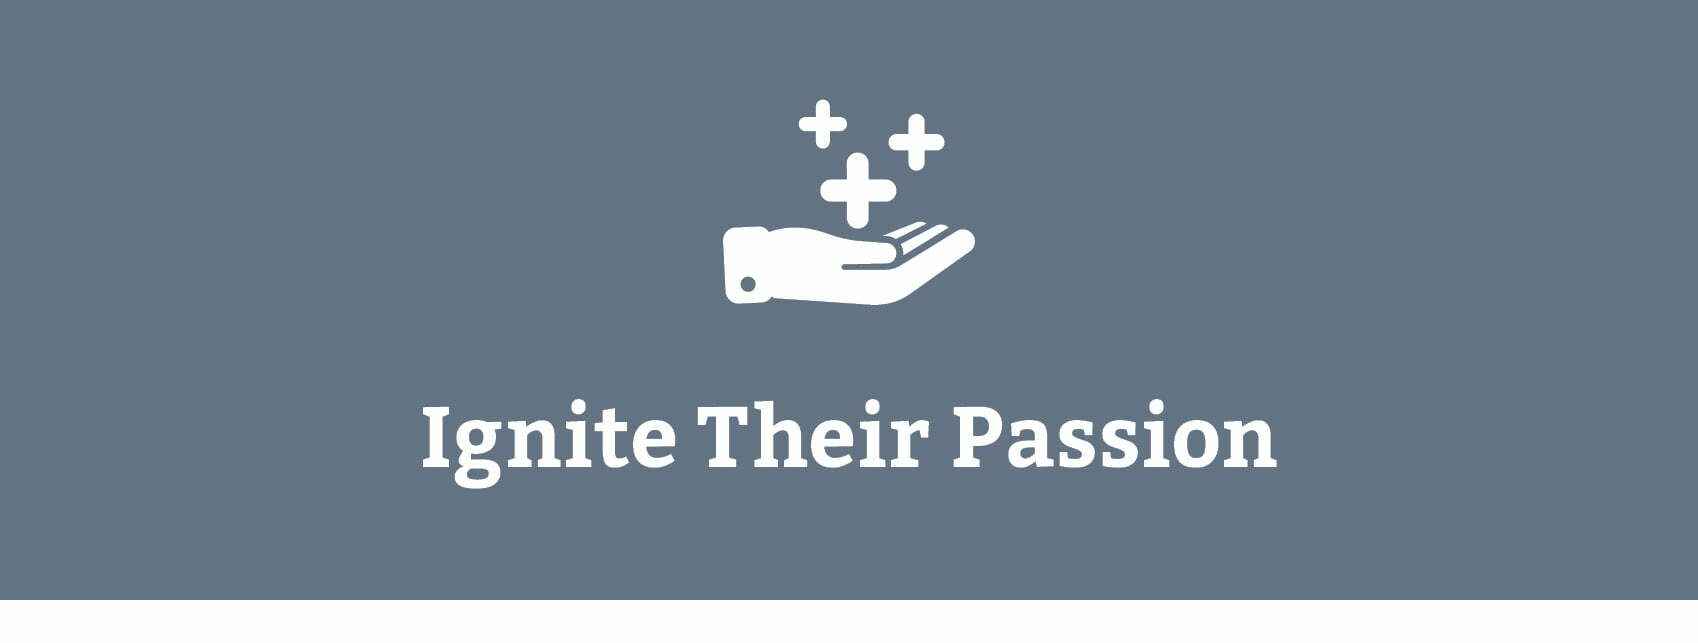 Ignite Their Passion